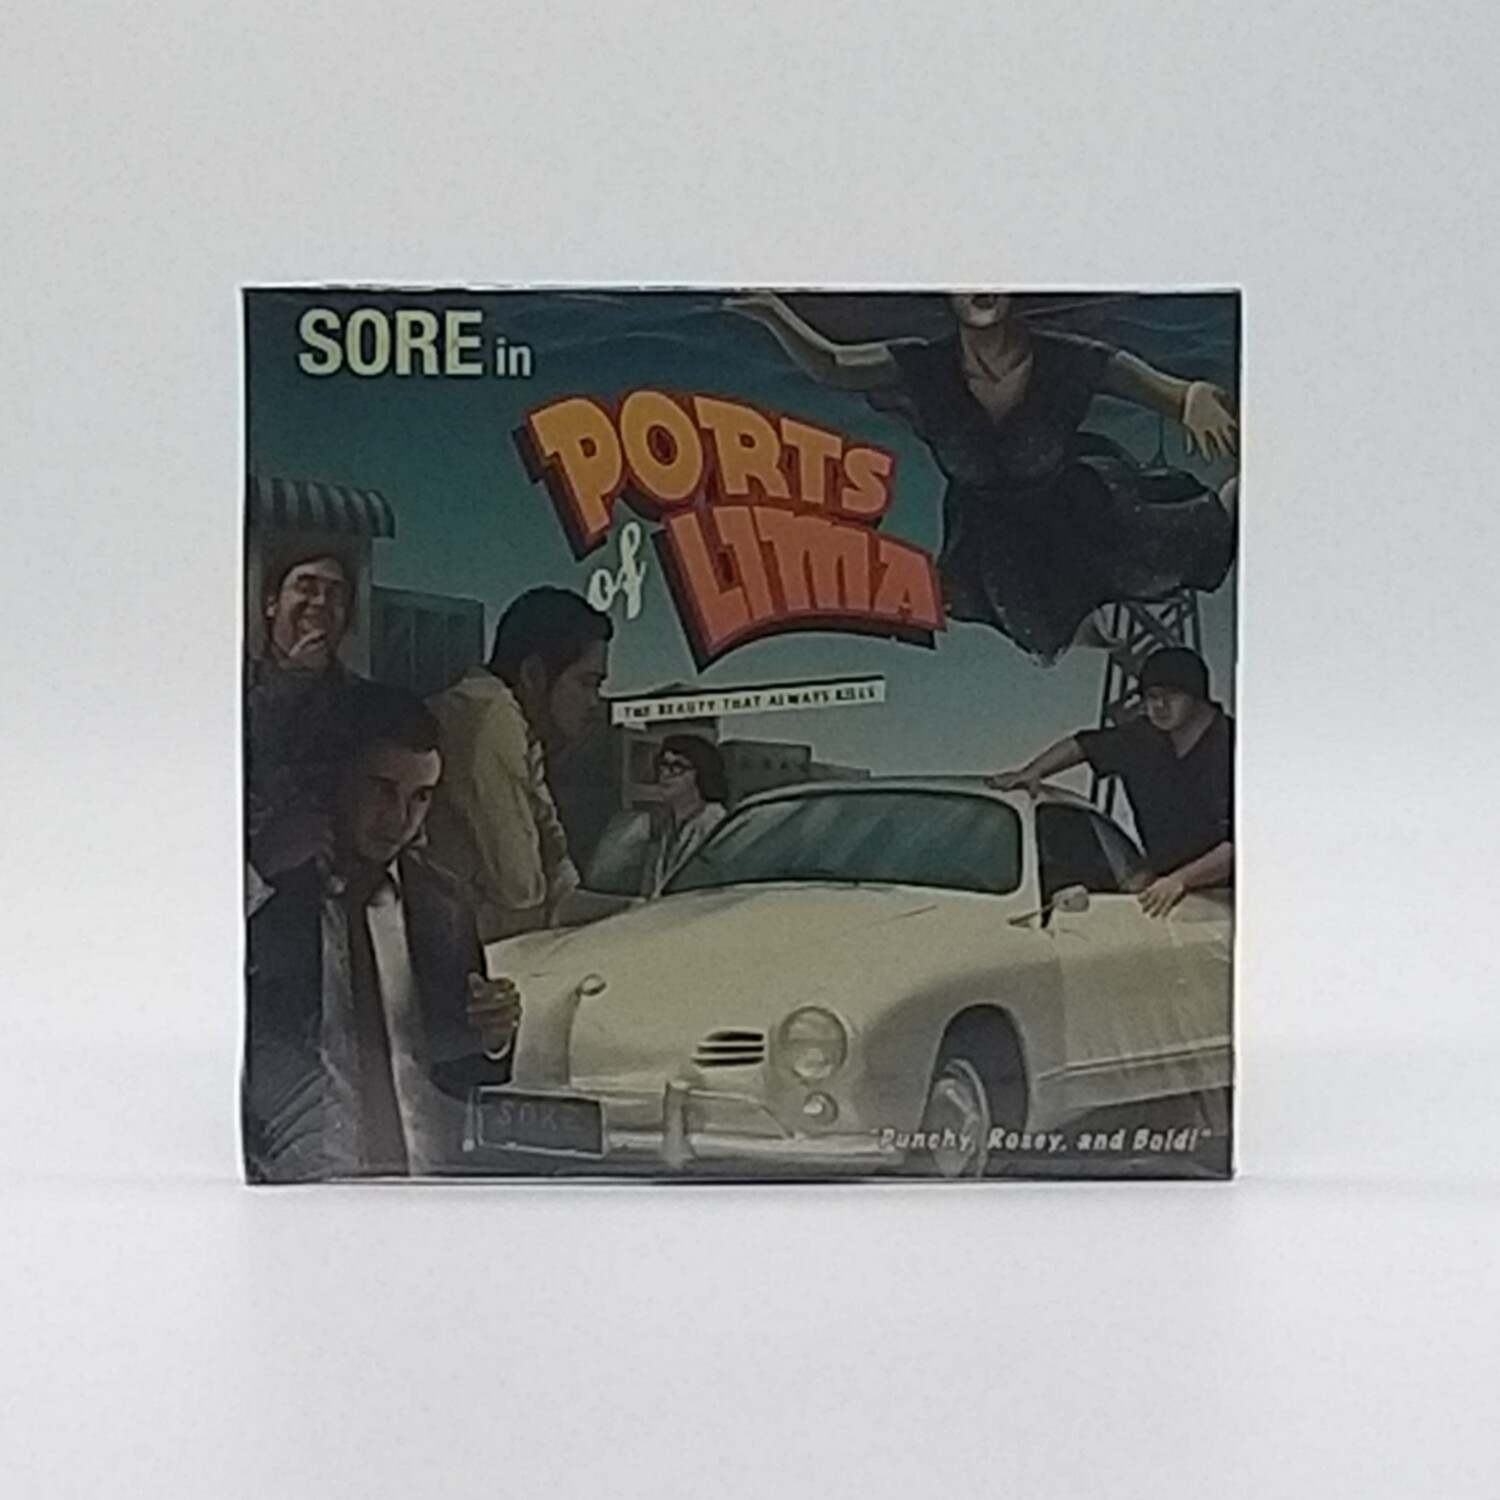 SORE -PORTS OF LIMA- CD